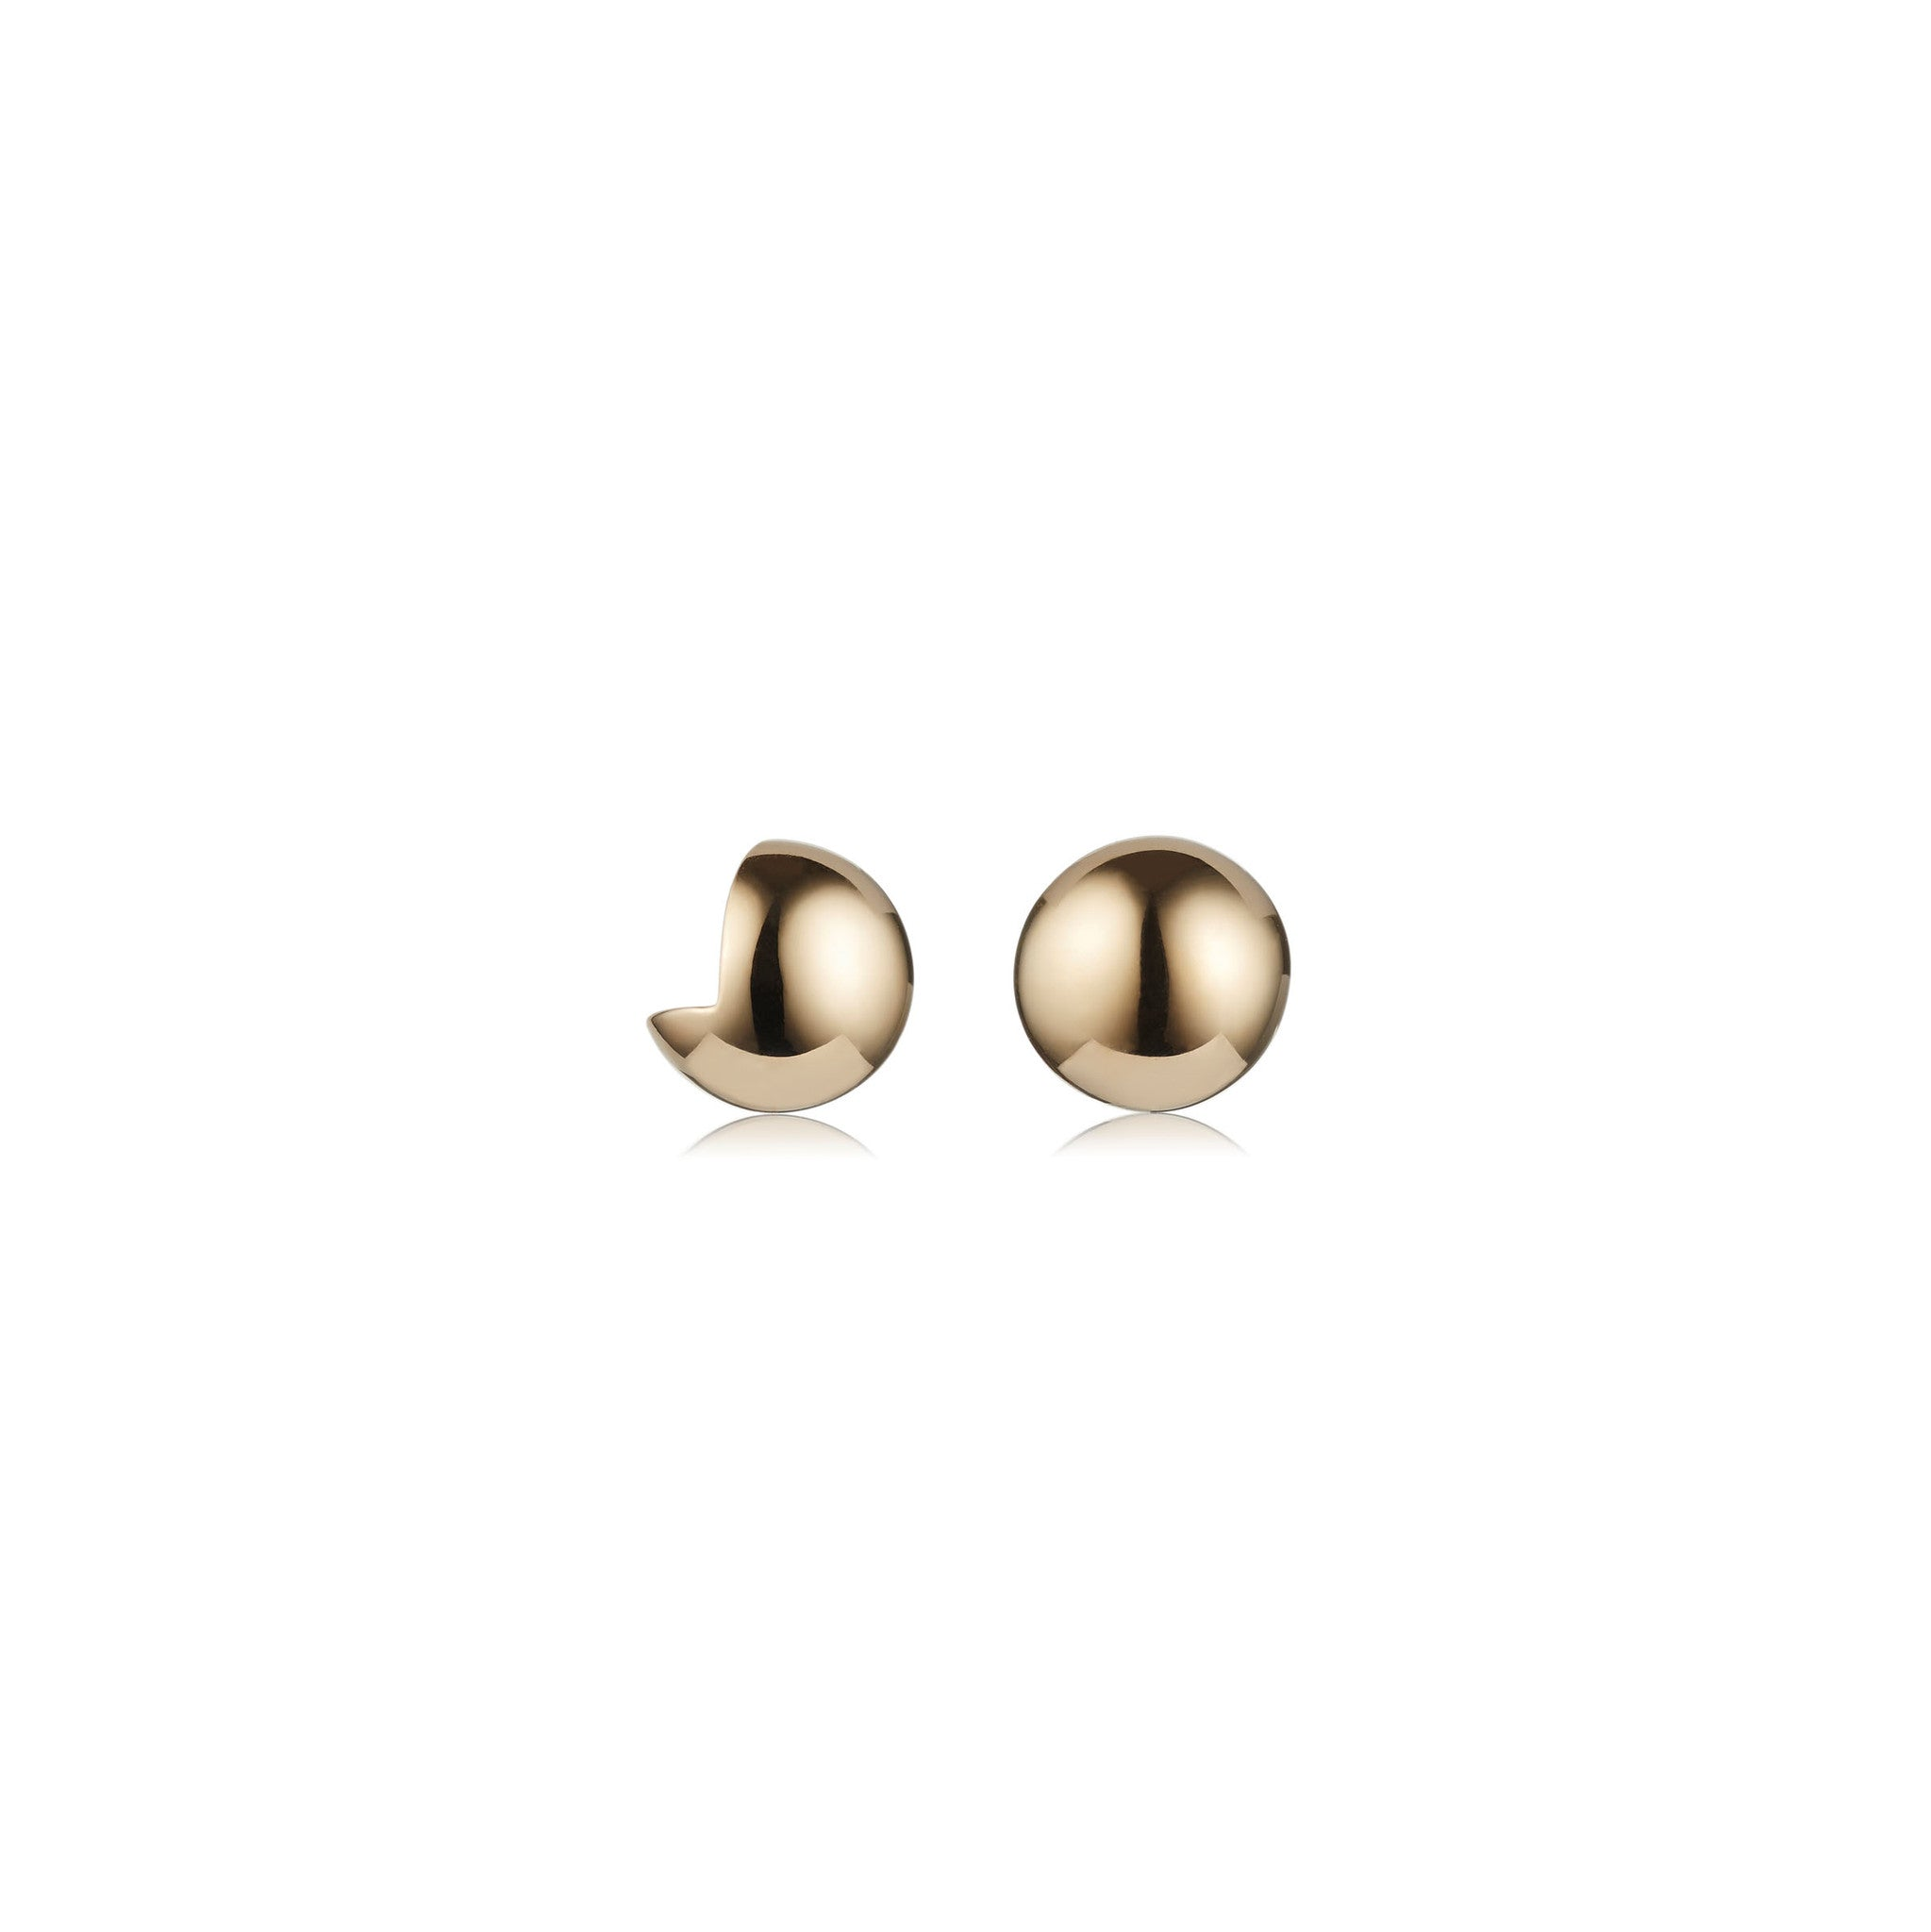 Solid brass, 18K gold plated Cava stud earrings – front